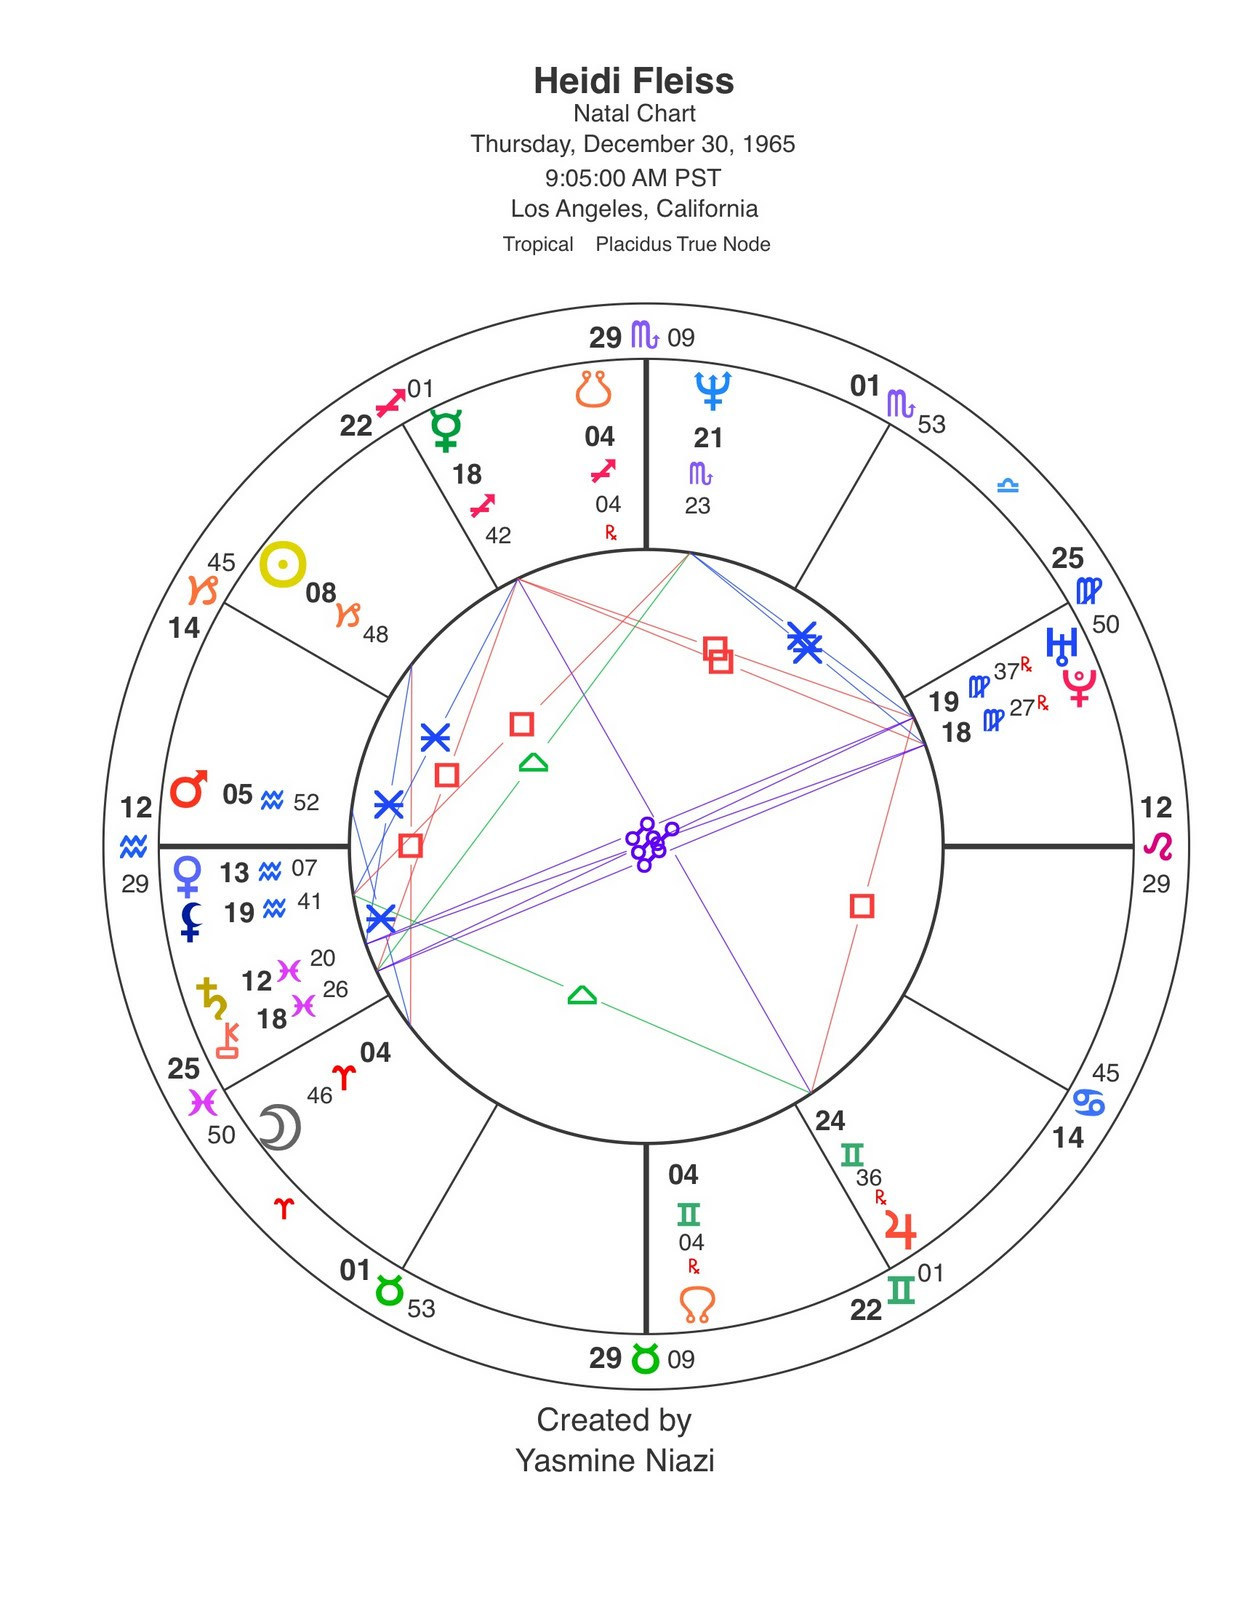 Yasmine niazi astrology heidi fleiss the natal chart part 1 heidis sun is in capricorn moon in aries and aquarius ascendant her natal moon is in the second house of the material money goods possessions nvjuhfo Choice Image